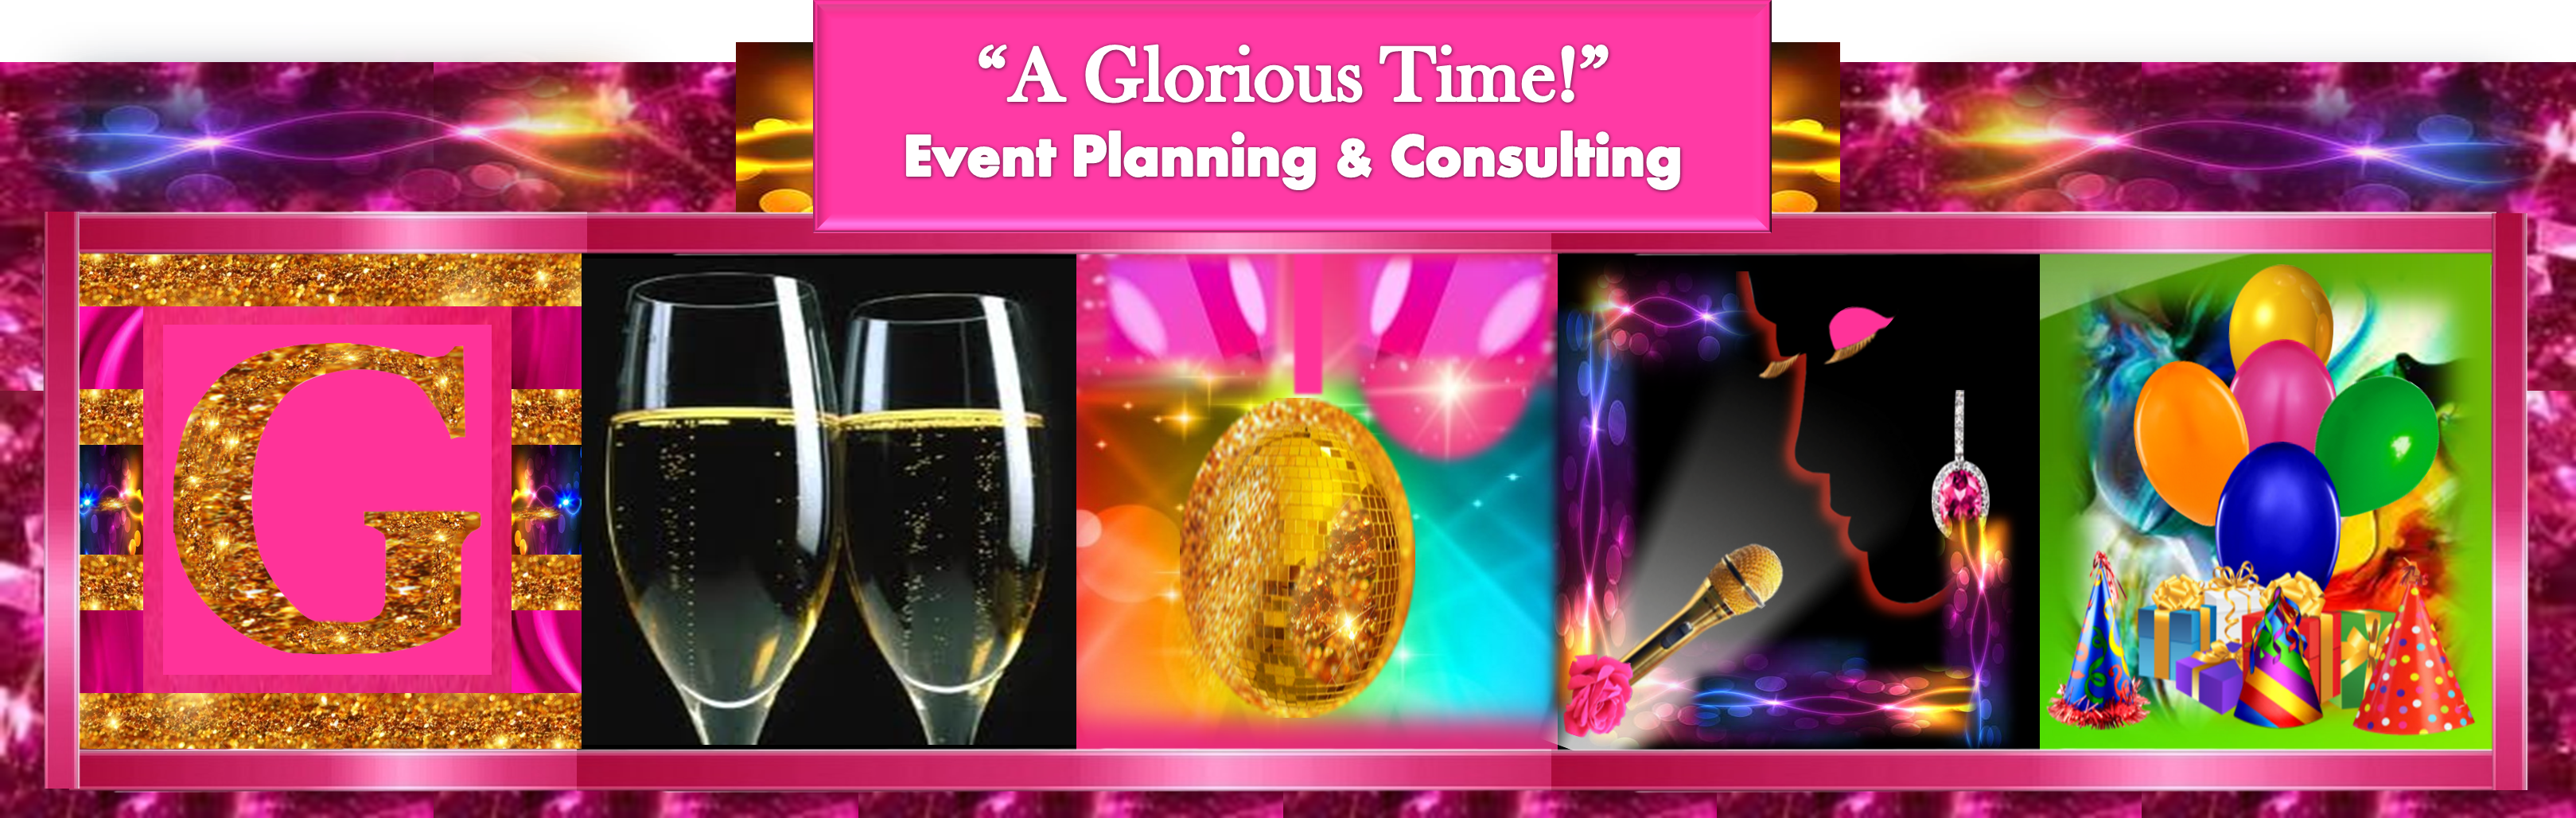 A Glorious Time Image - For First Page of Website - 2015